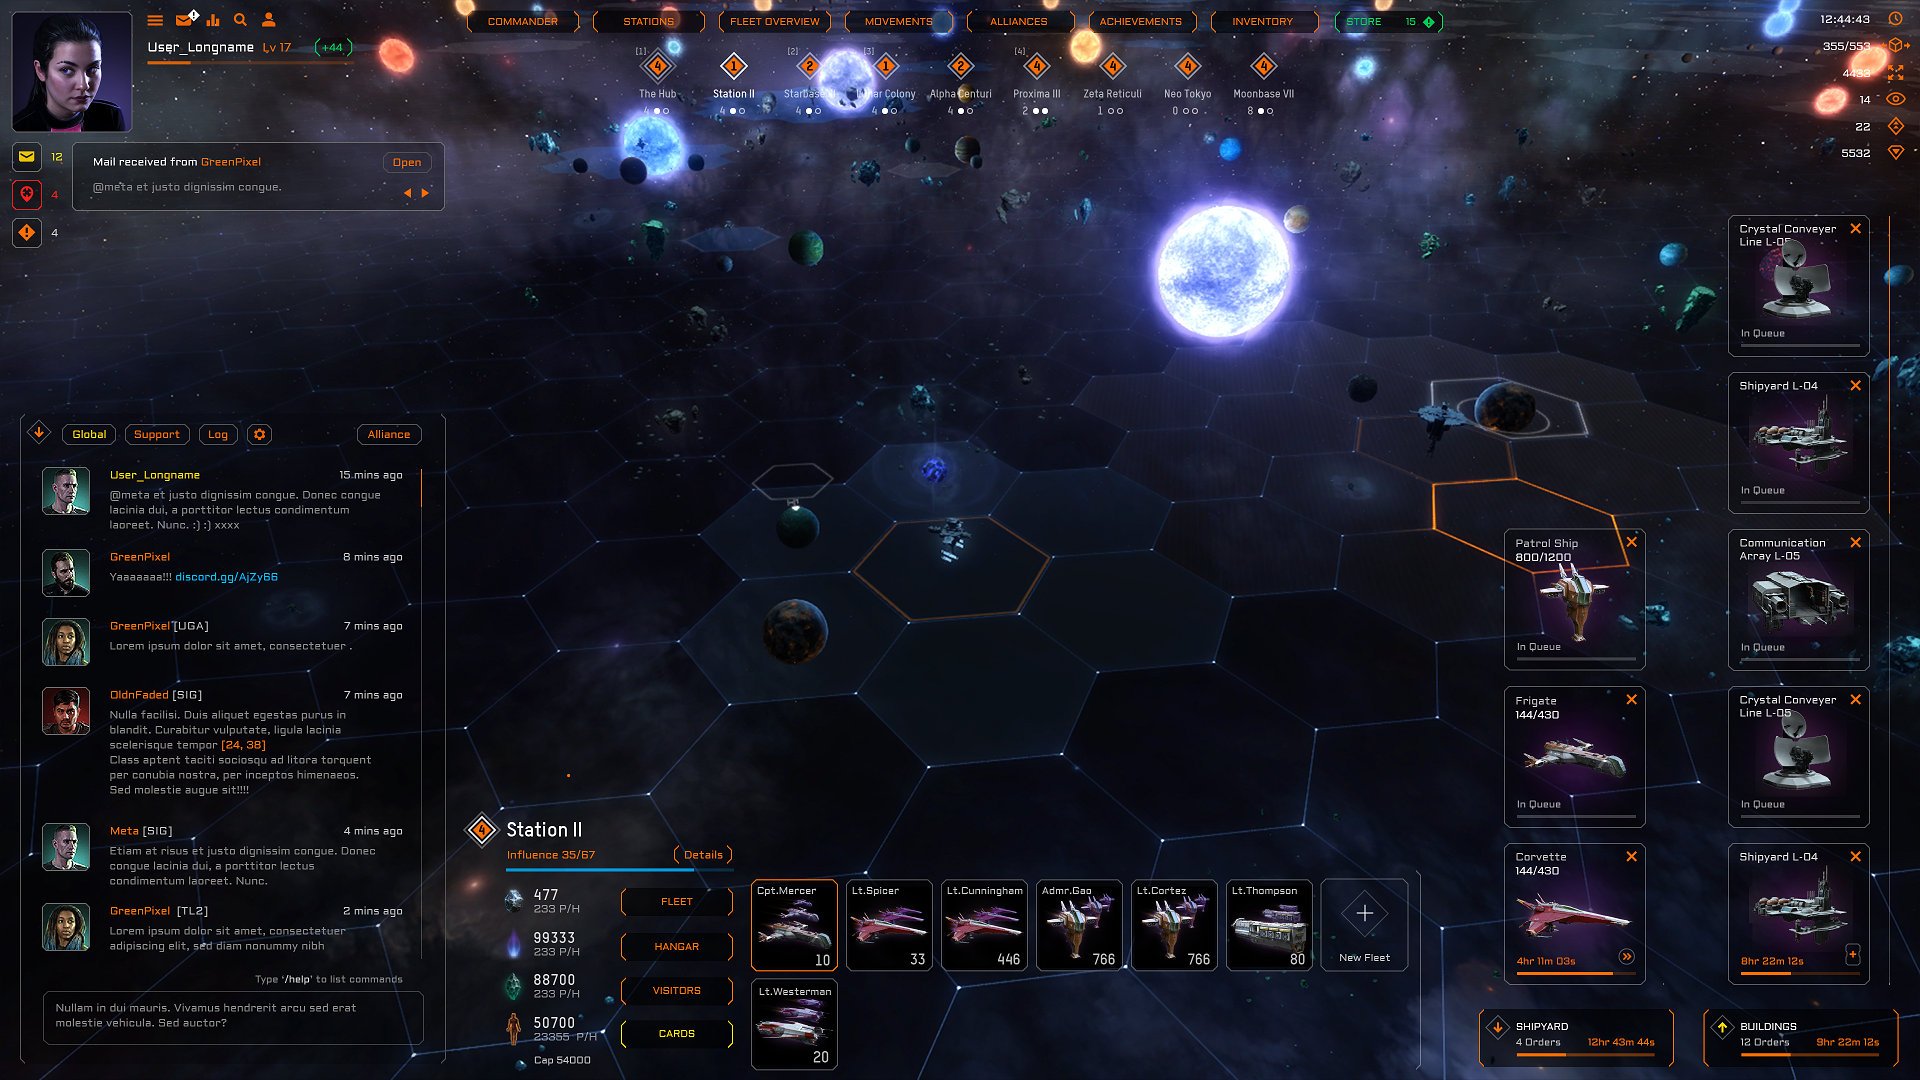 Sneak Peek Of The New HUD! news - Starborne: Sovereign Space